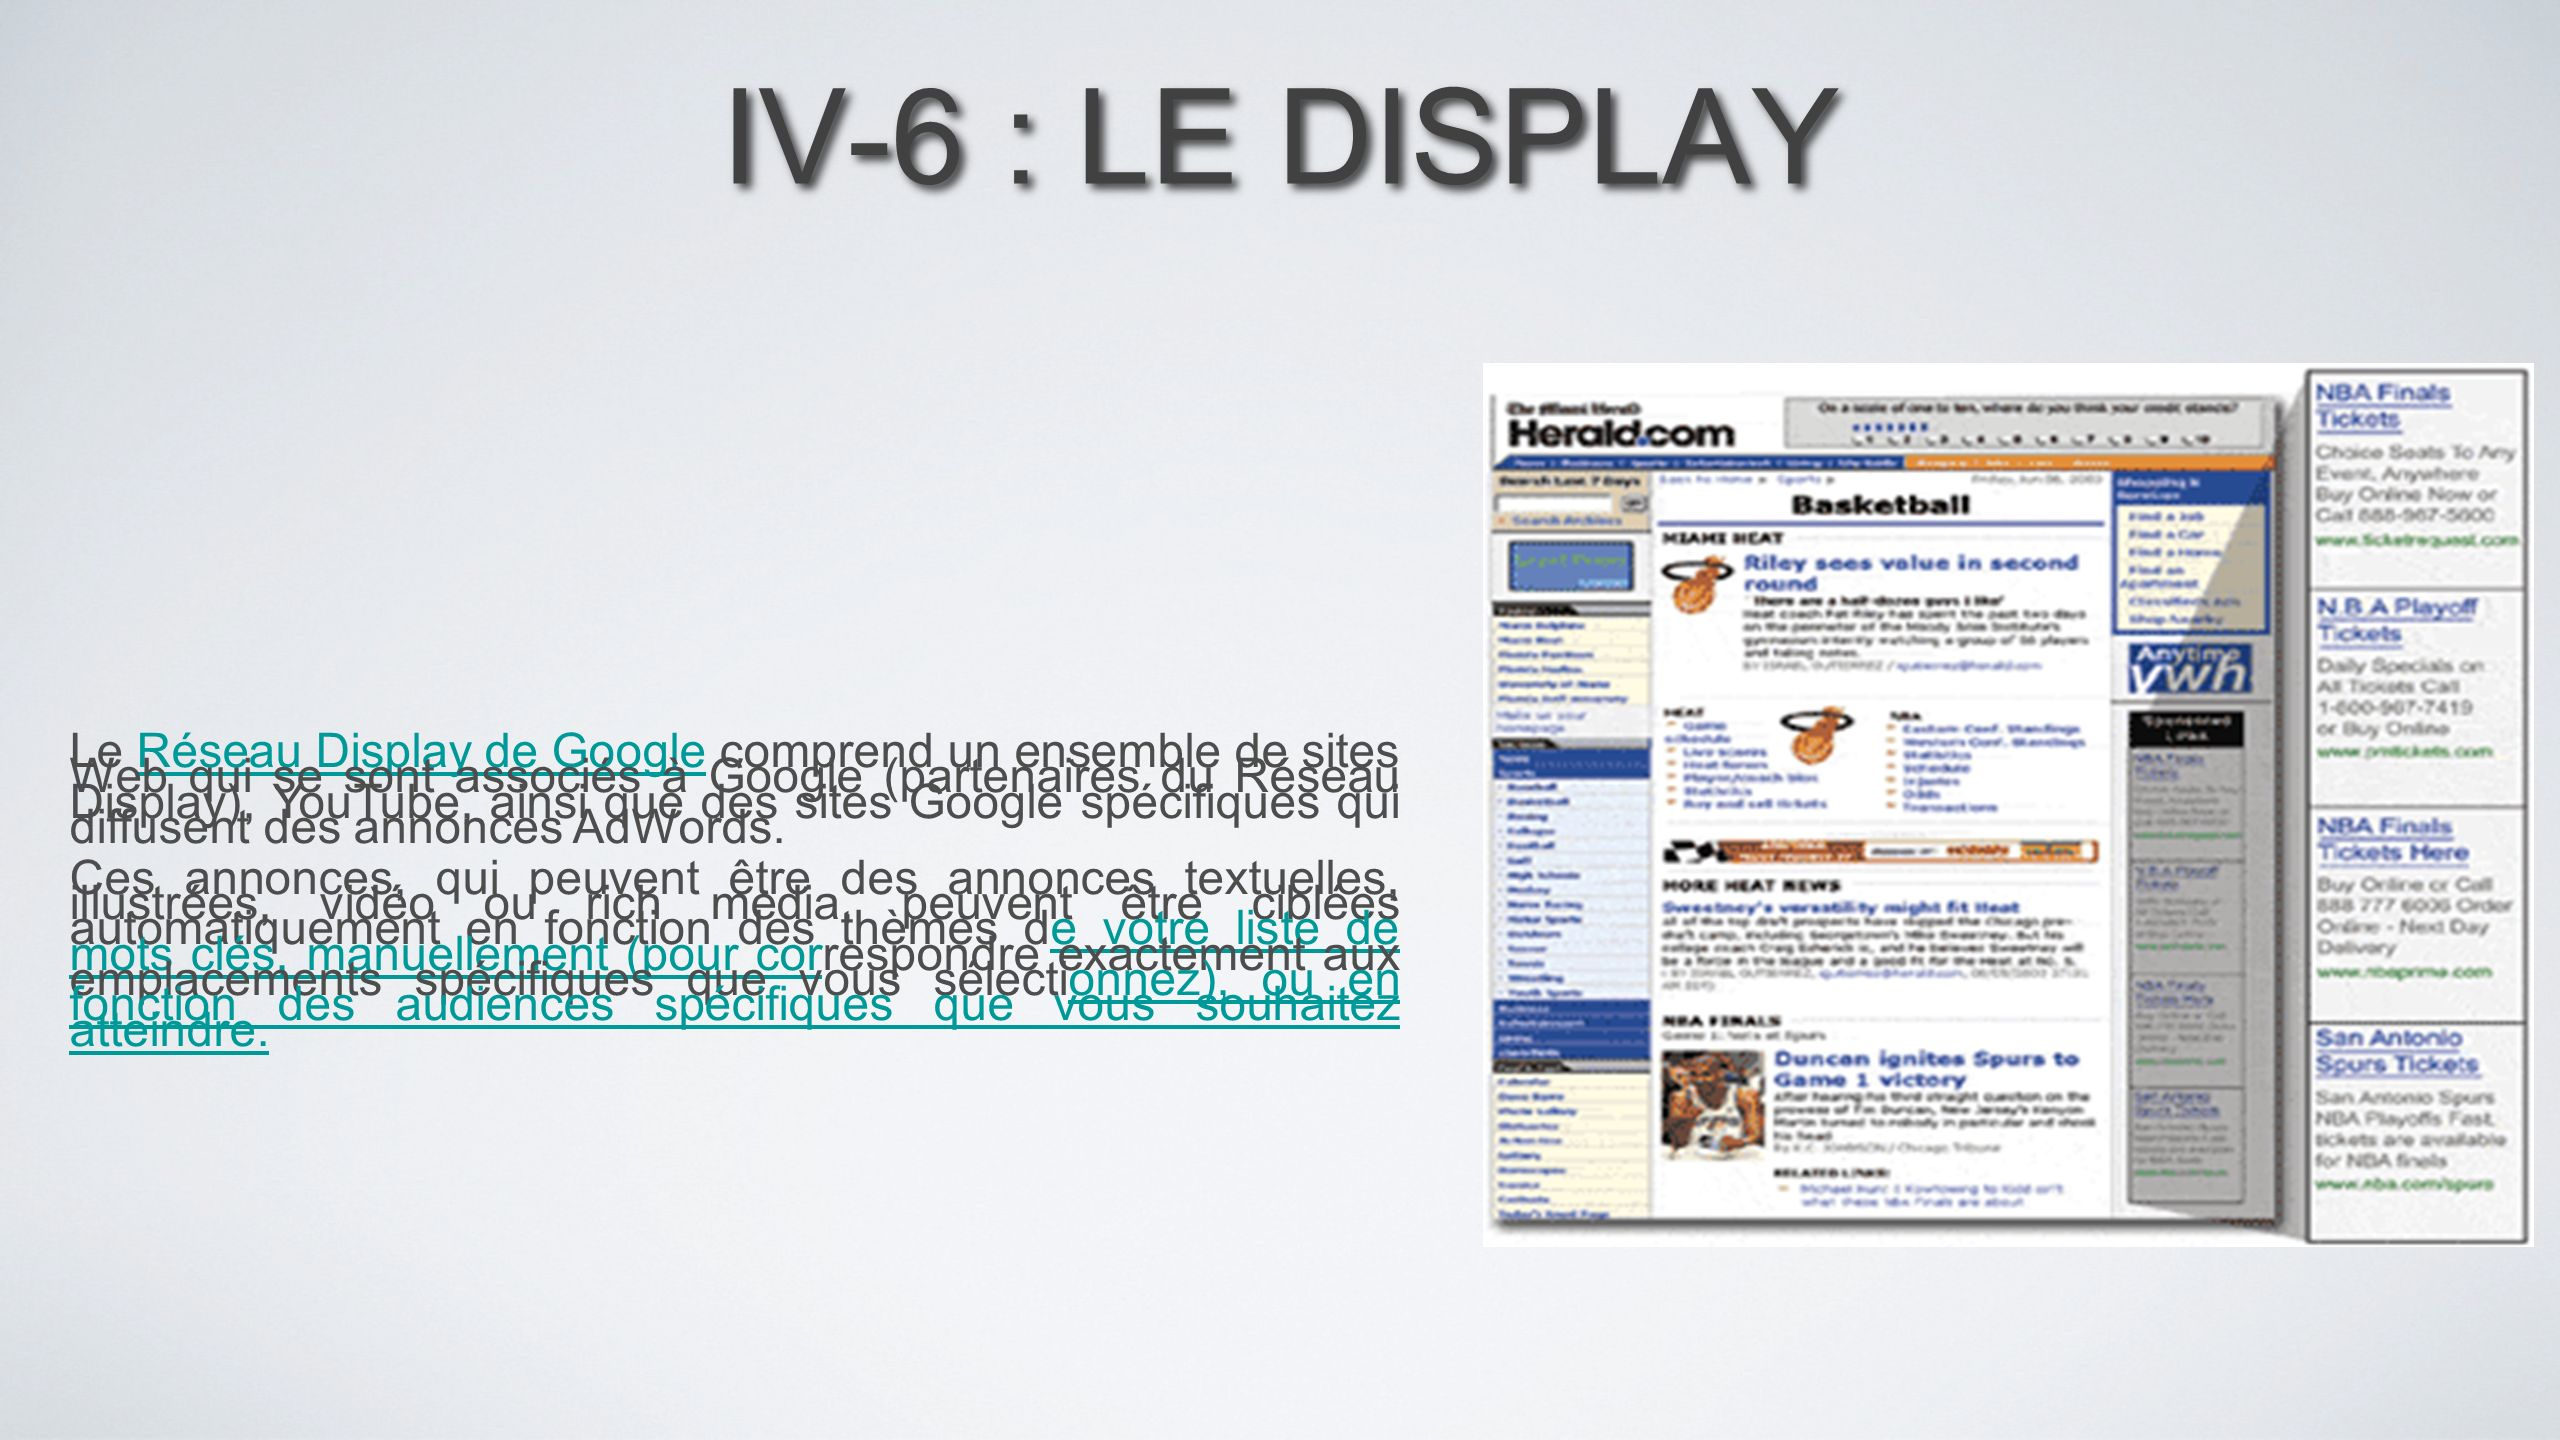 IV-6 : LE DISPLAY